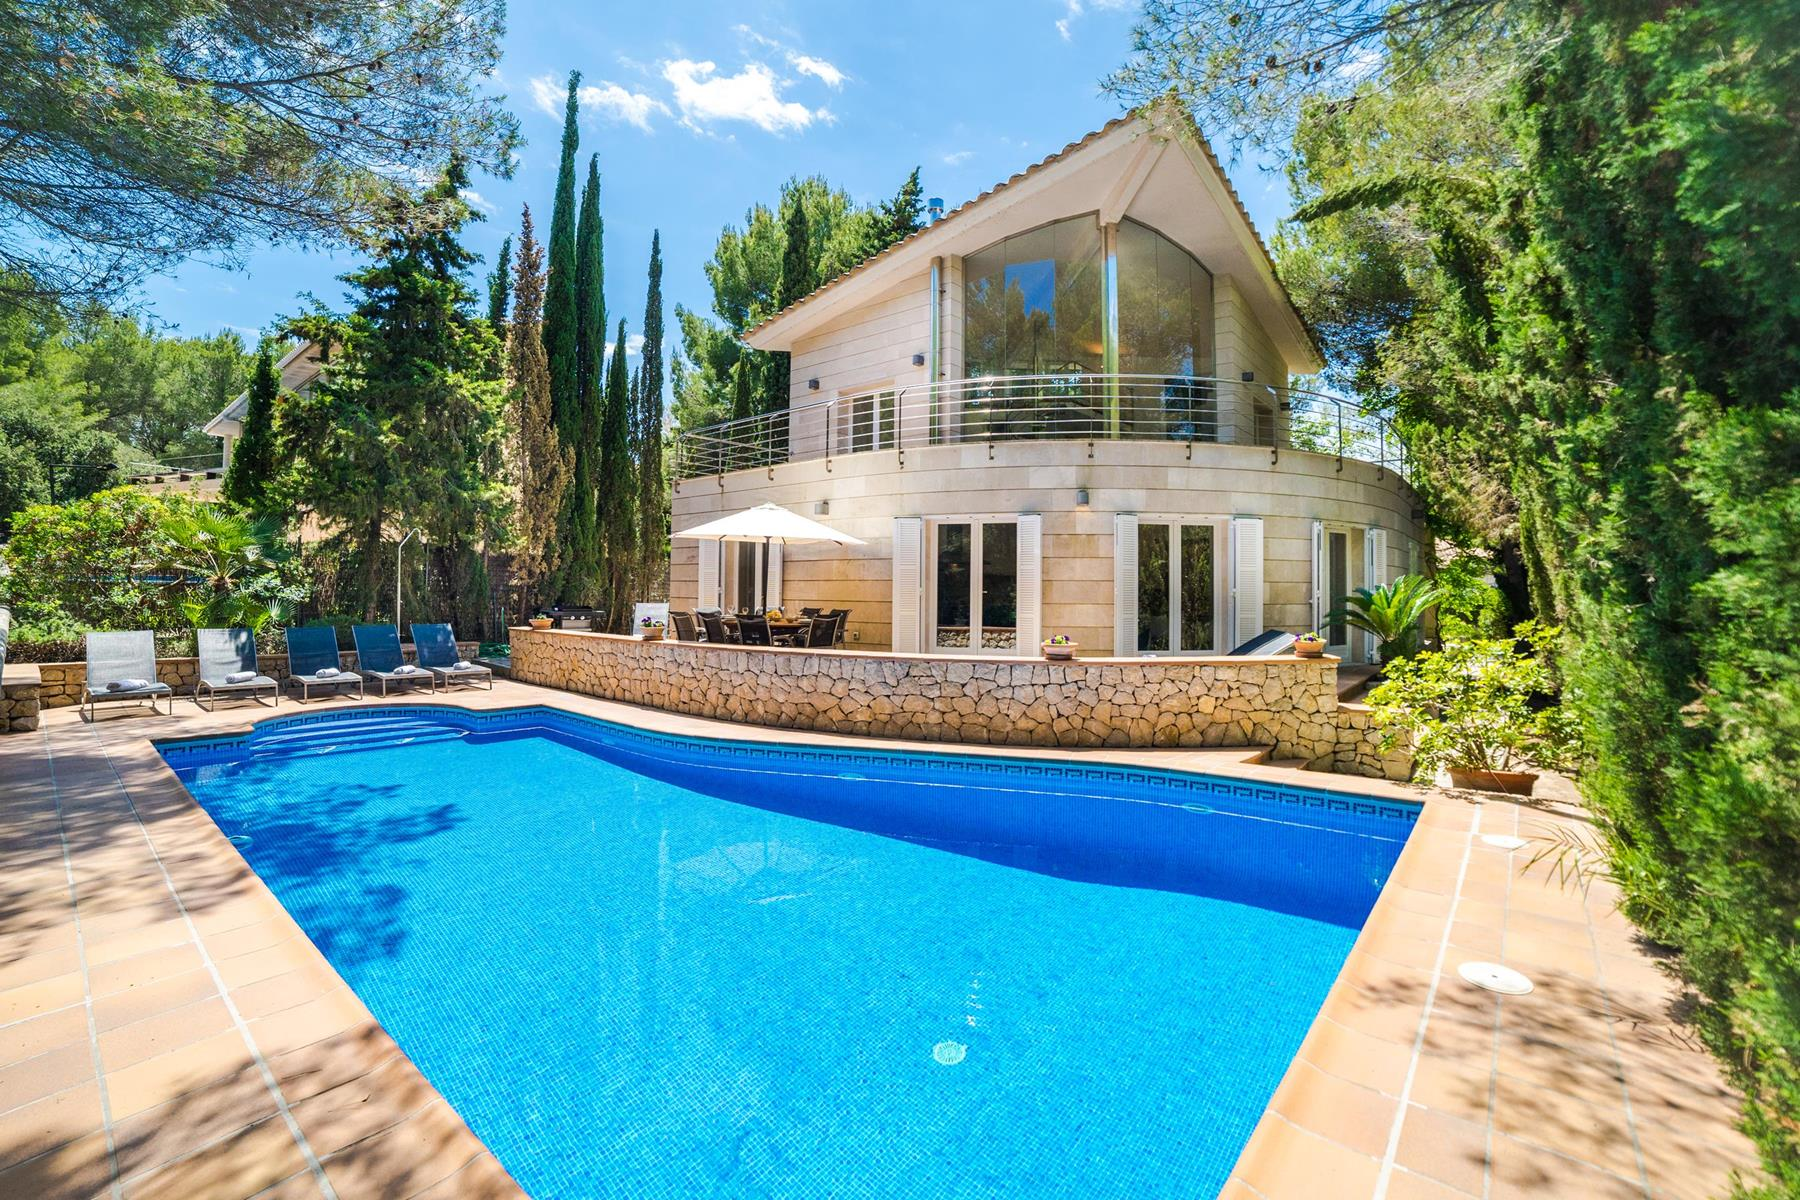 Dream House For 8 People With Swimming Pool, The Best Equipment For Guests  In The Most Exclusive Area Of Alcudia